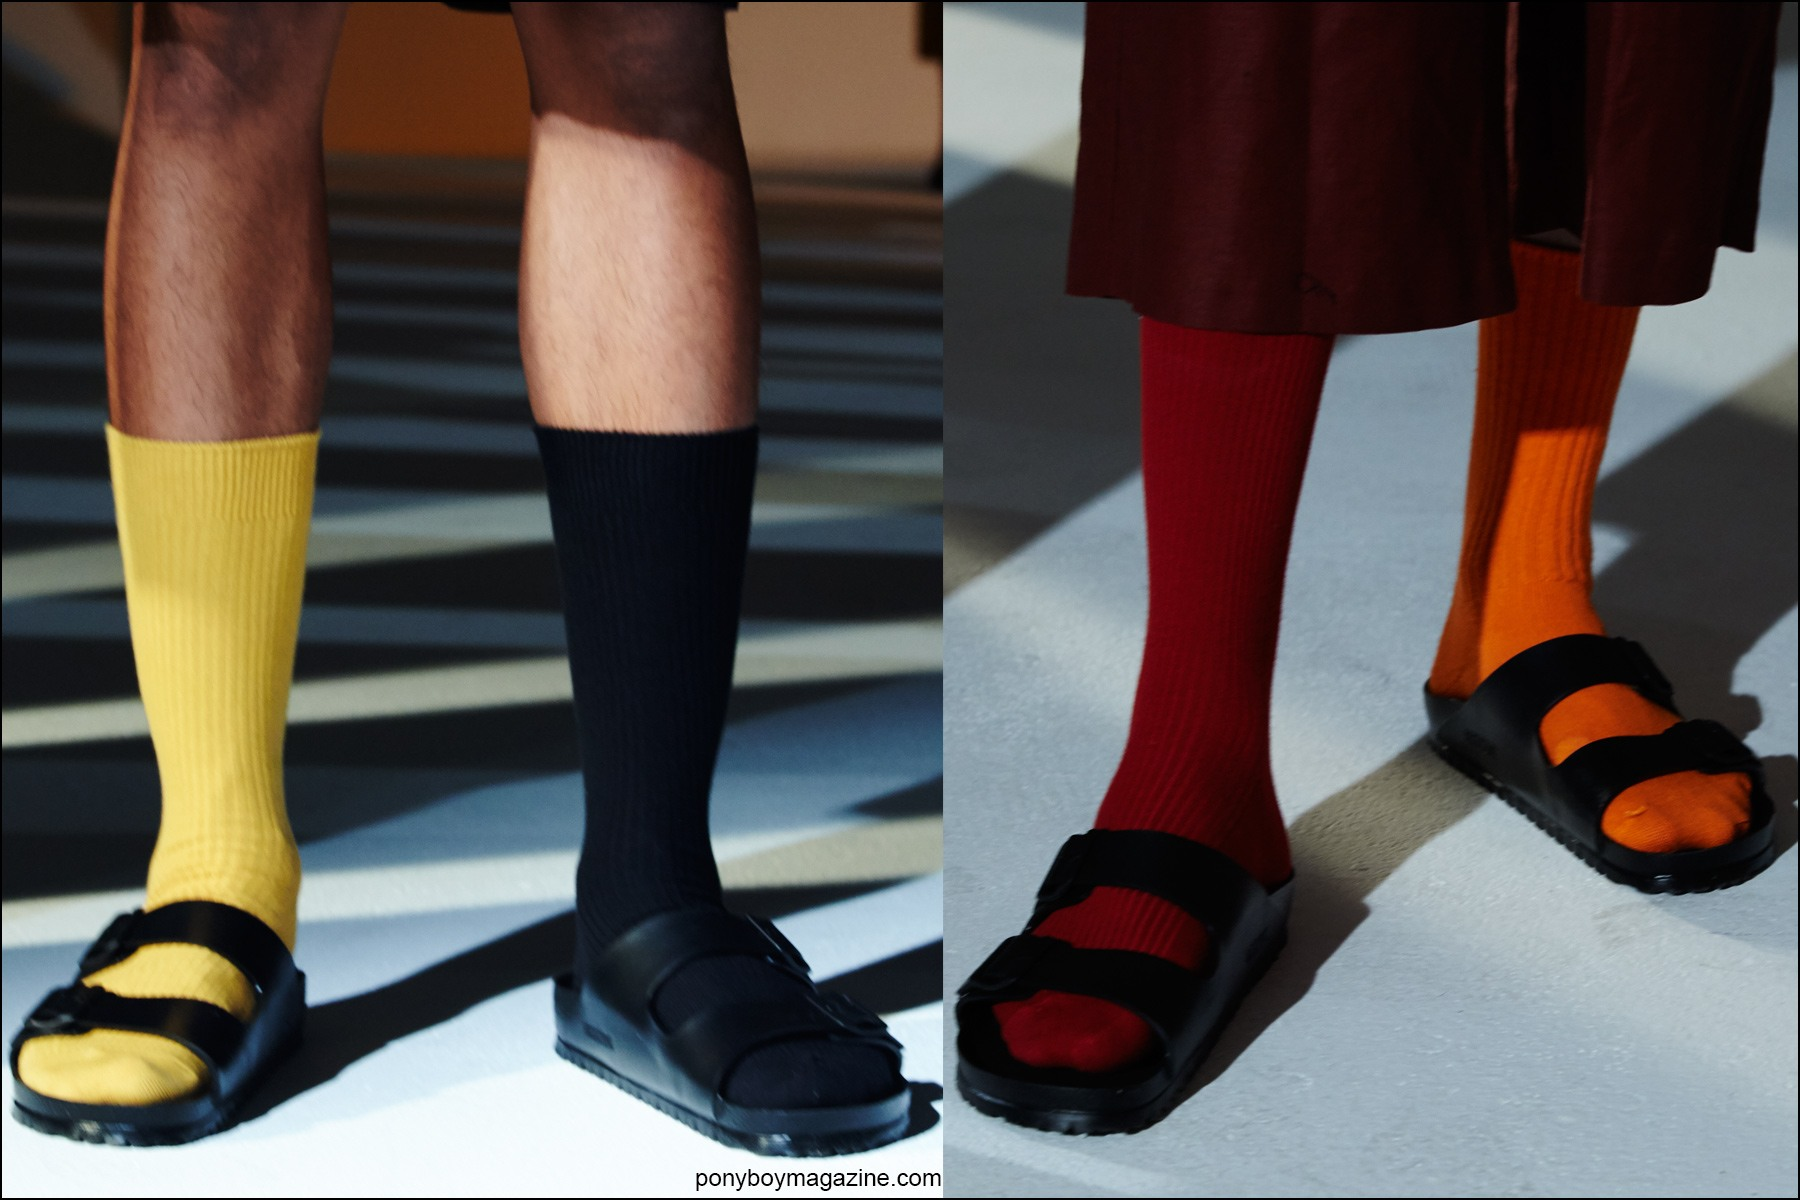 Detail shots of men's socks/shoes at the Fingers Crossed S/S16 menswear collection, photographed in New York by Alexander Thompson for Ponyboy magazine.